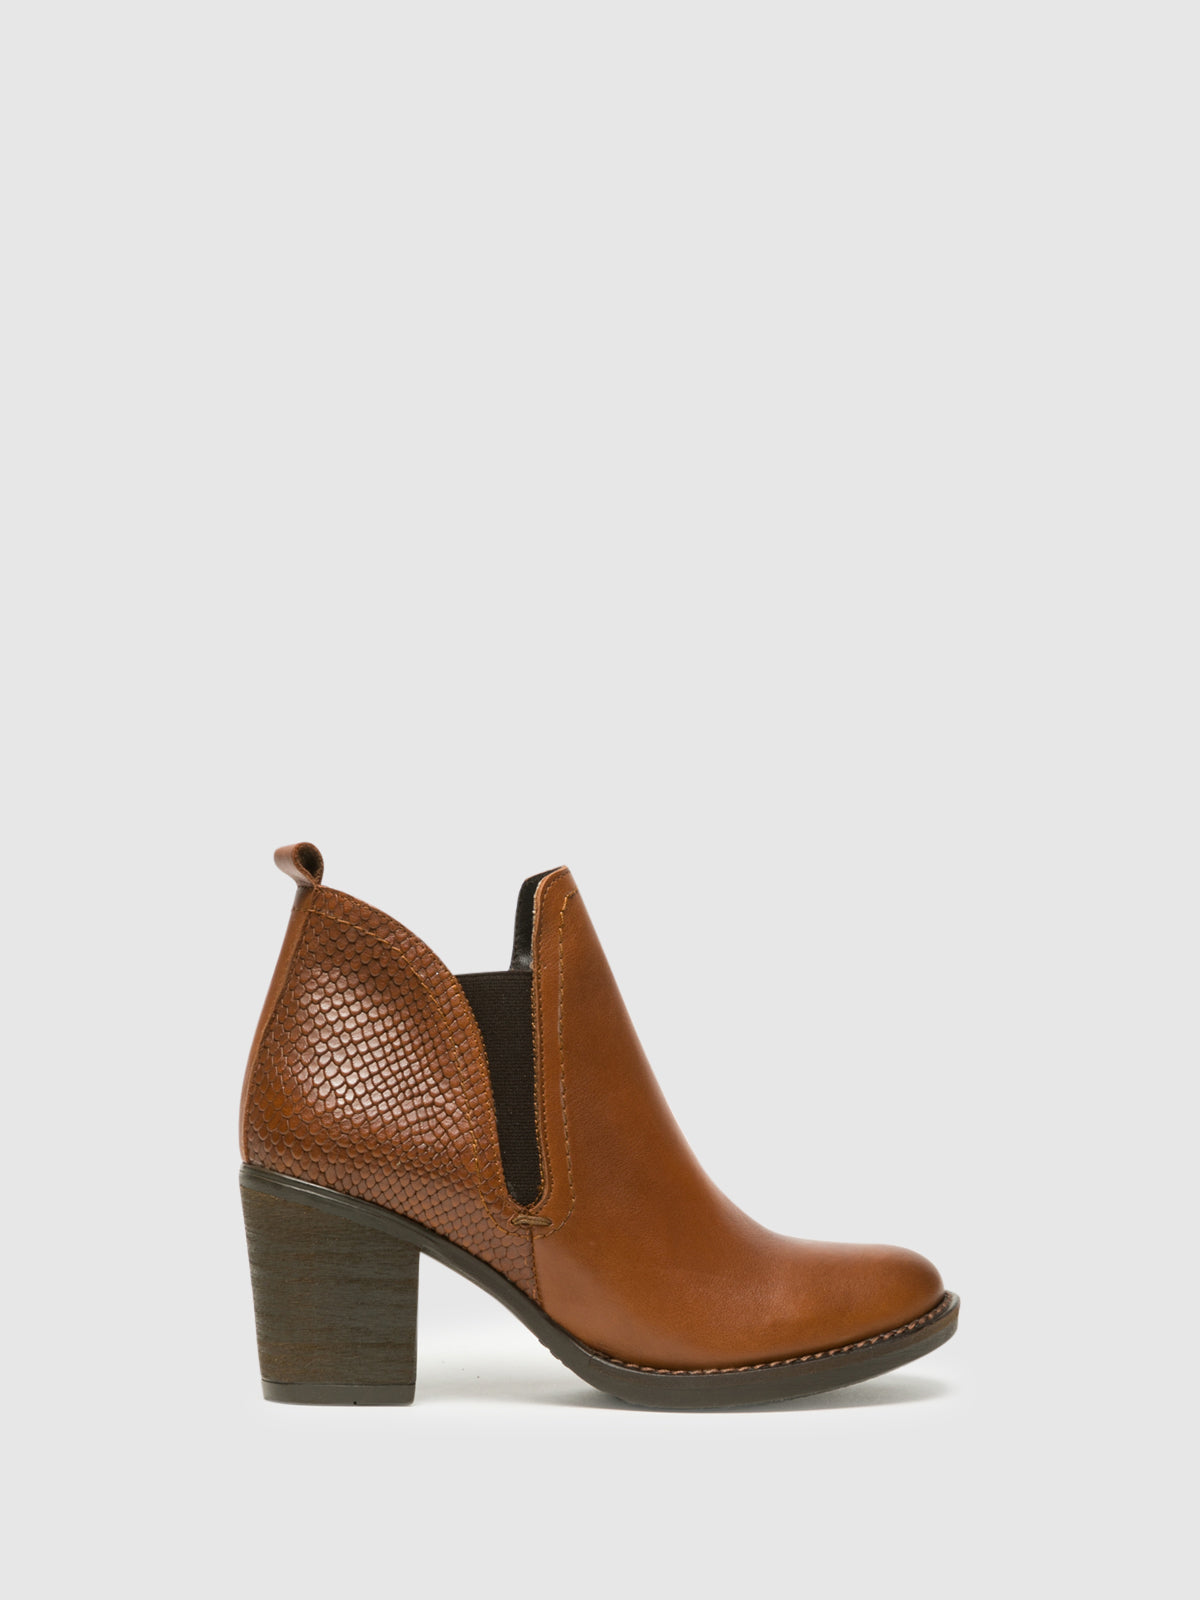 Foreva Brown Round Toe Ankle Boots